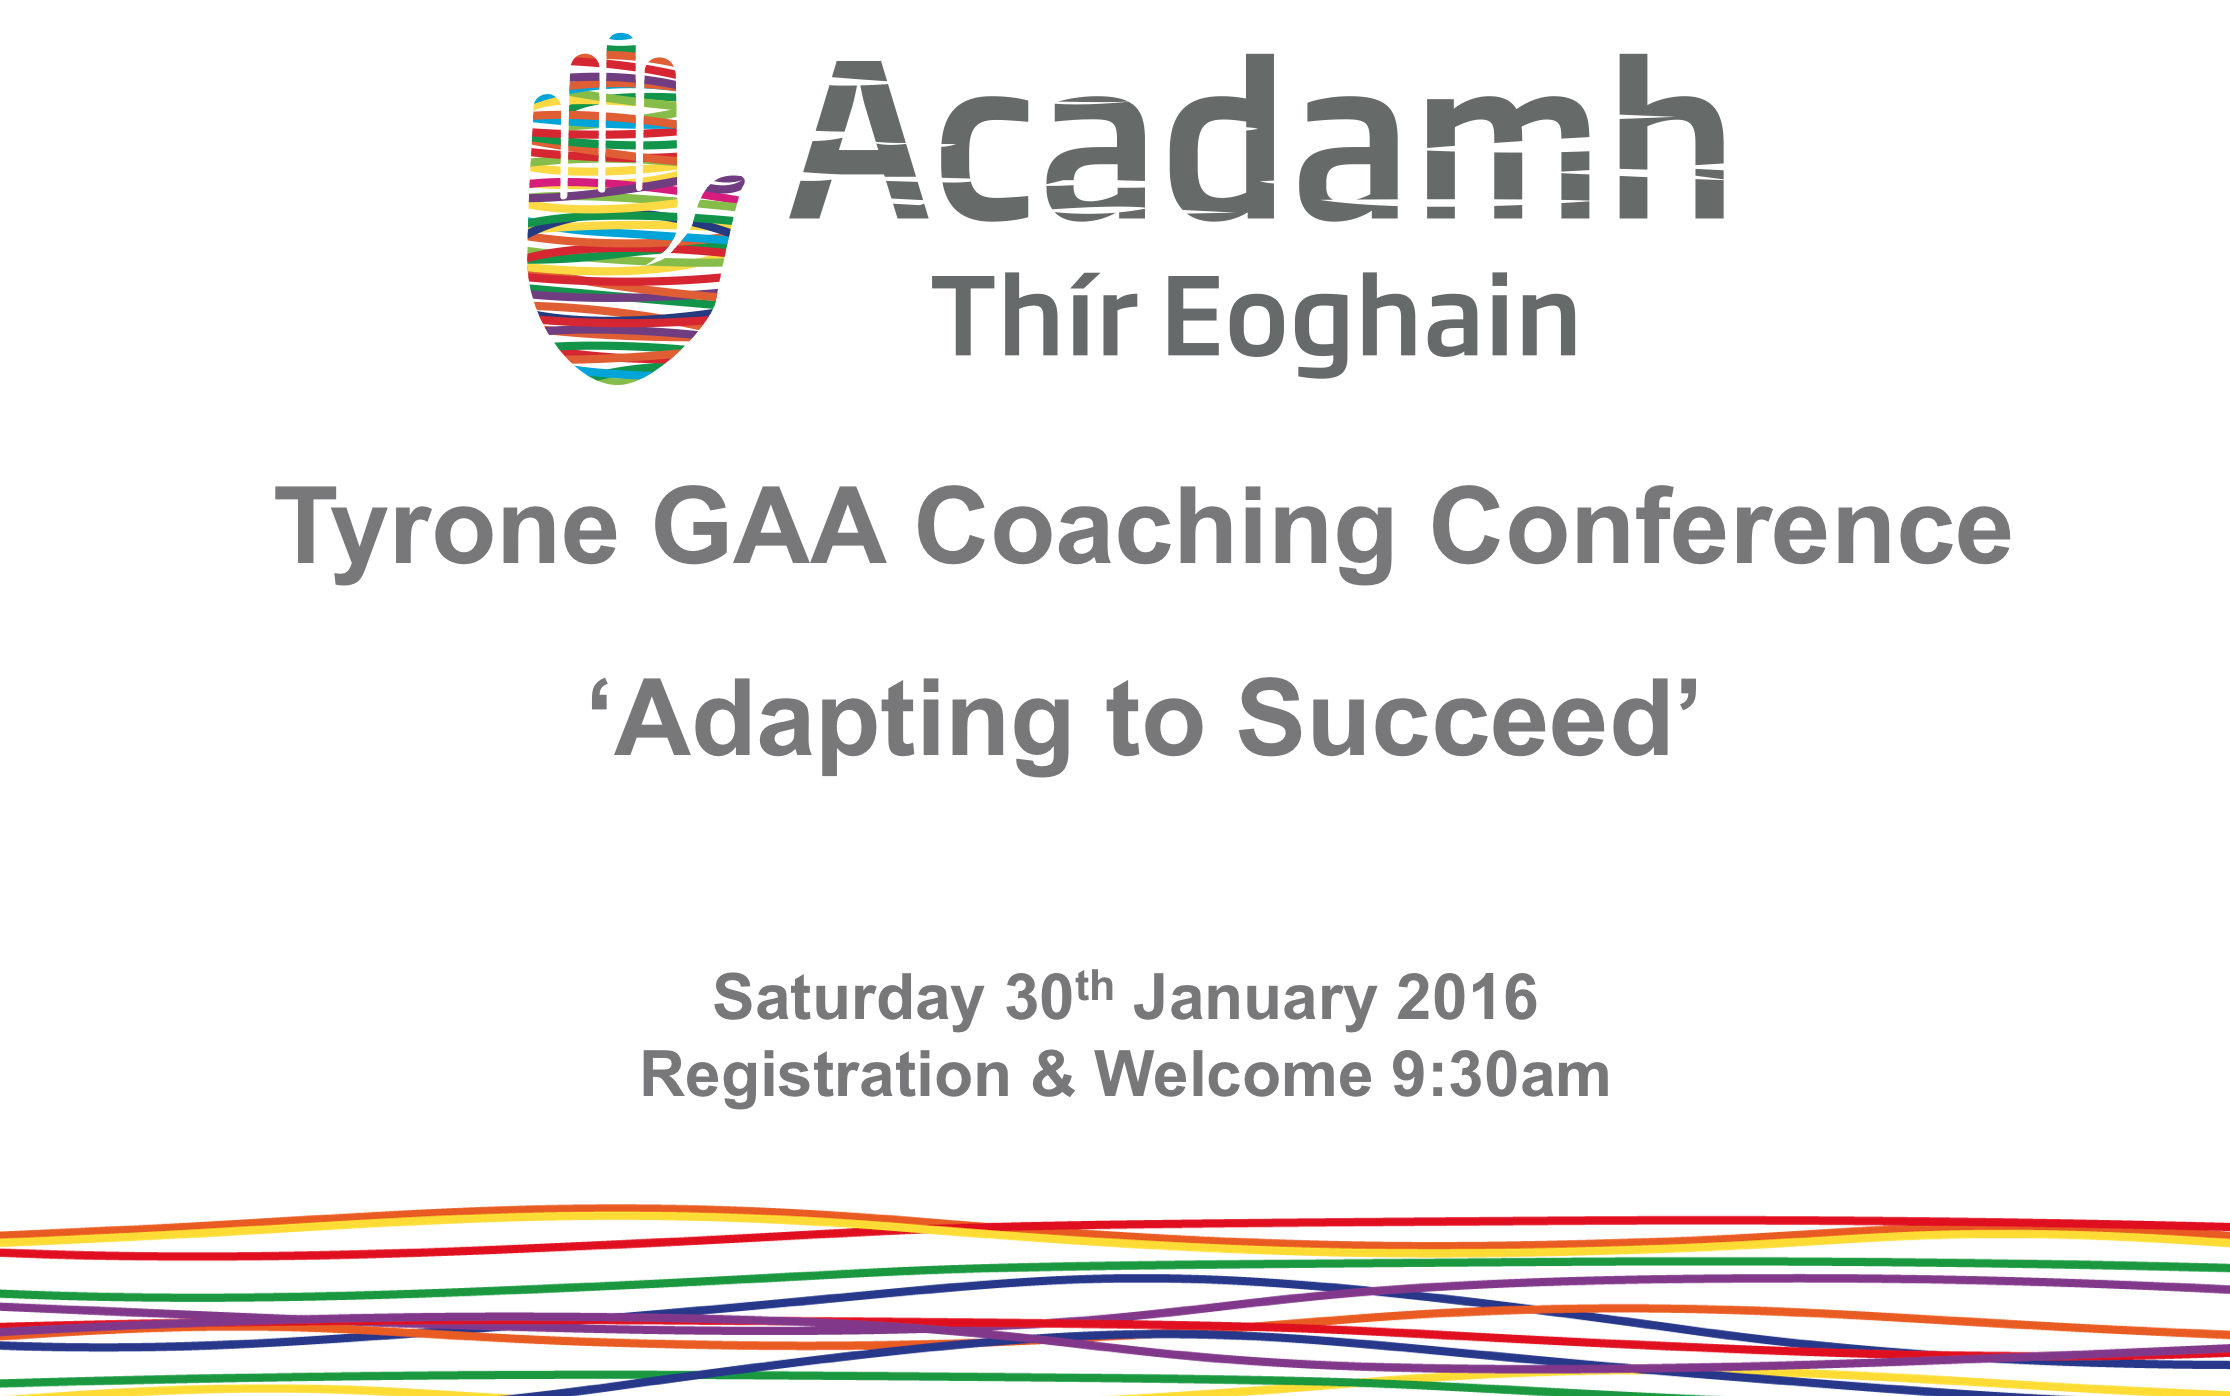 Coaching Conference this Saturday!